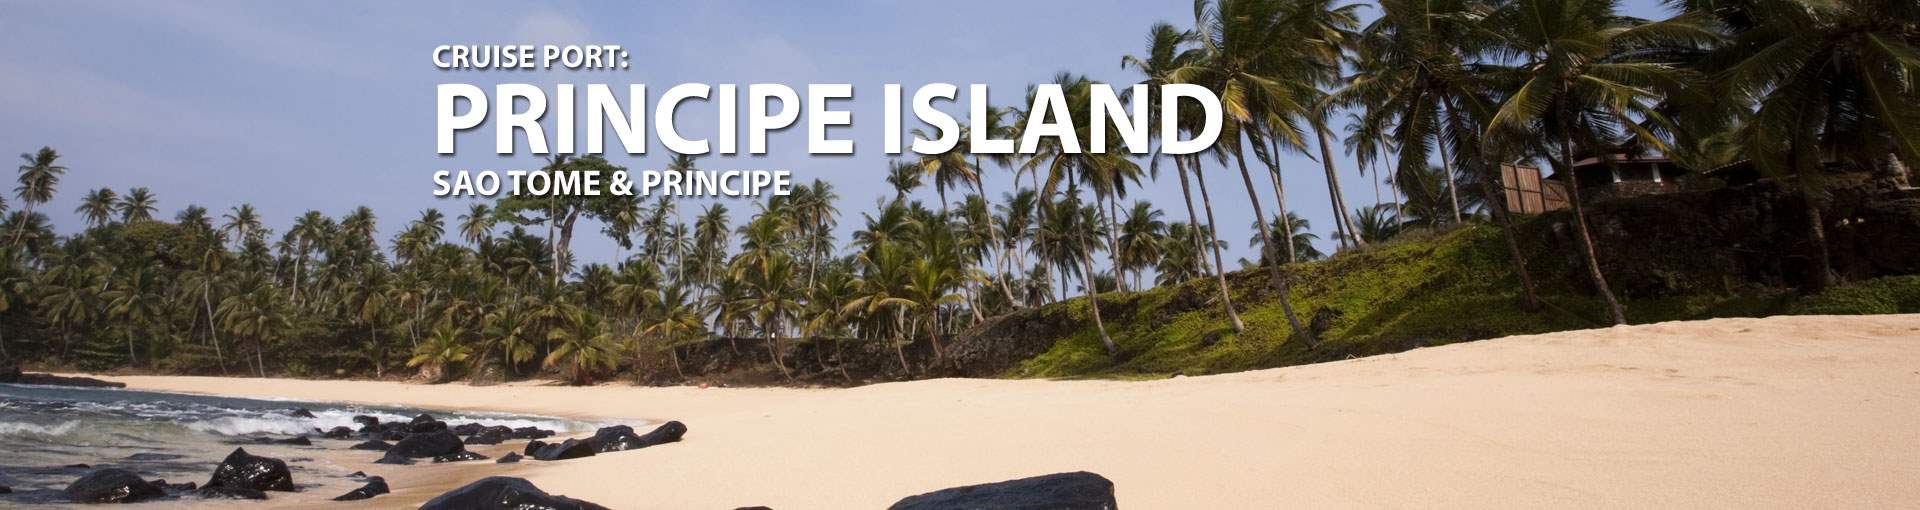 Cruises to Principe Island, Sao Tome And Principe